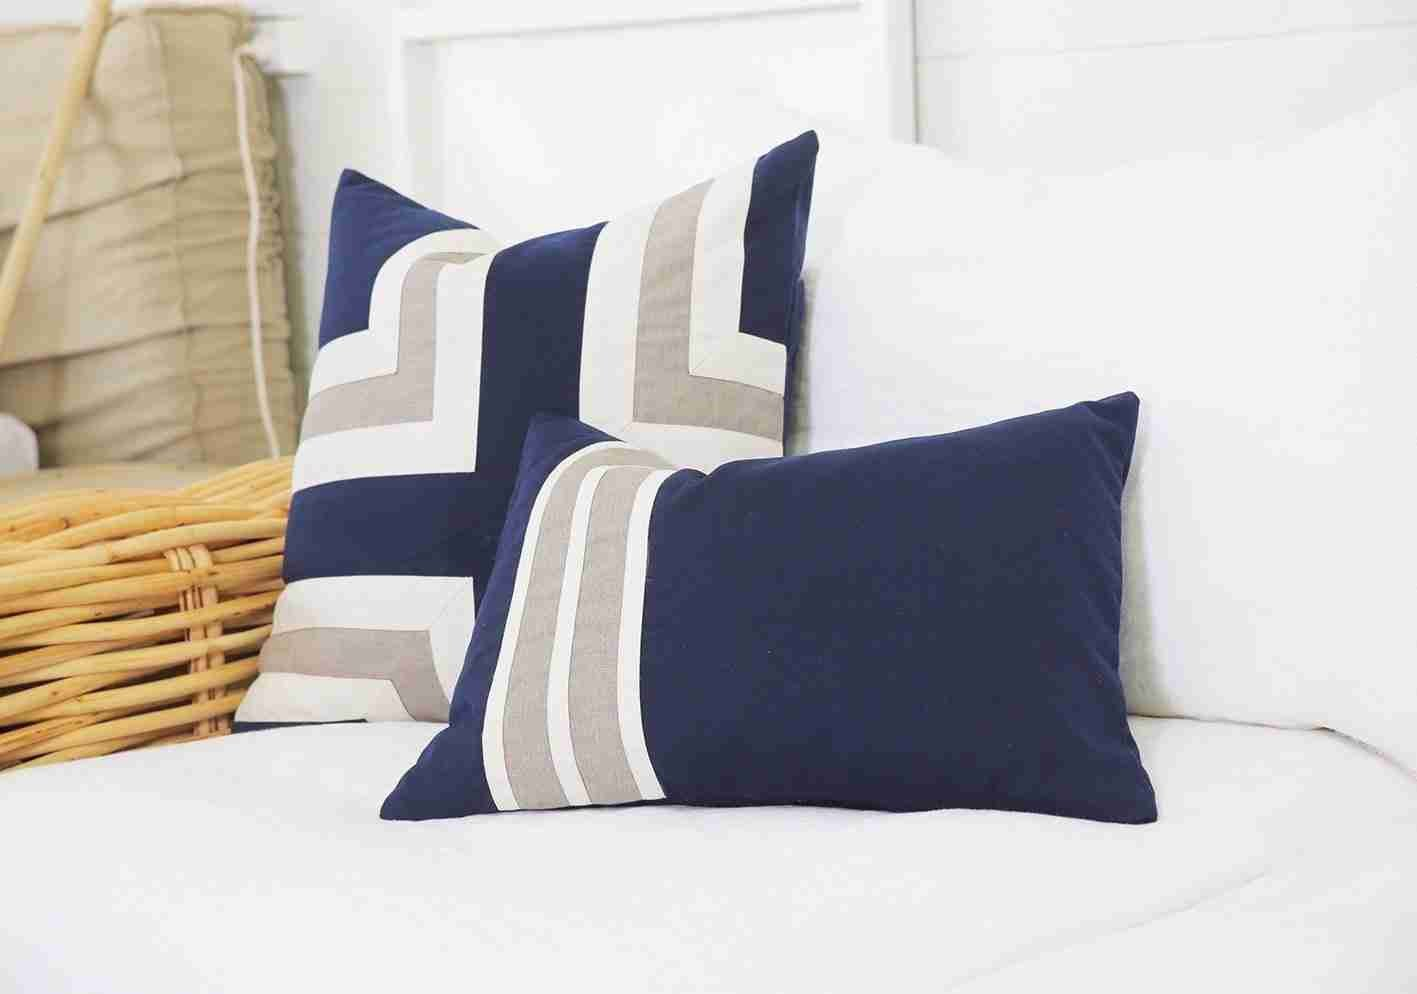 Bandhini Homewear Design Lumber Cushion Blue / 14 x 21 Outdoor Regent Stripe Navy Lumber Cushion 35 x 53 cm